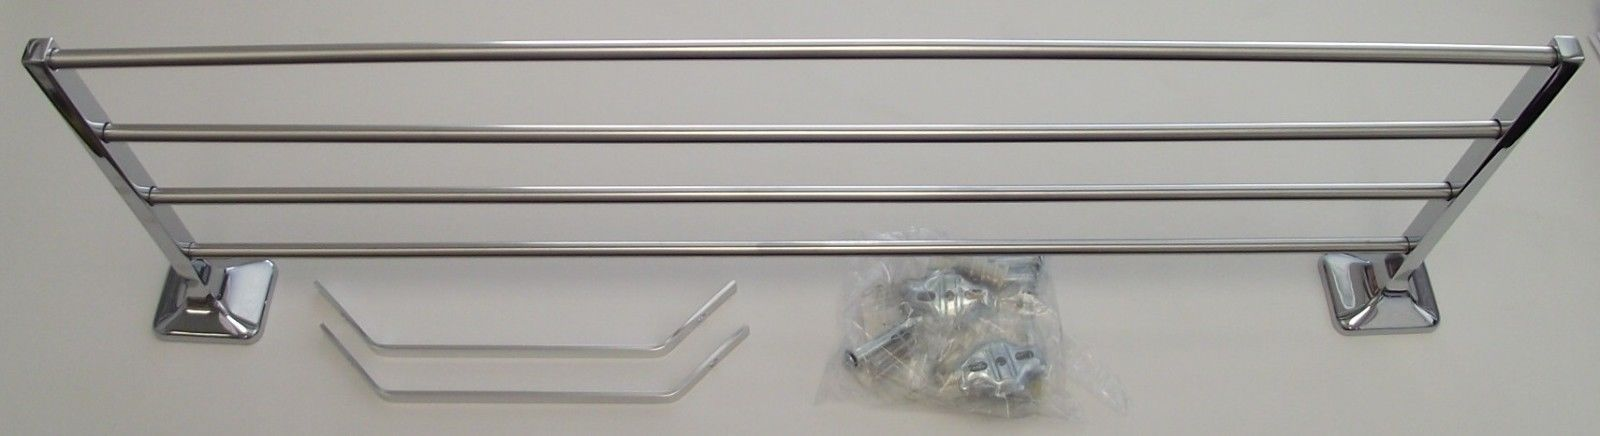 Primary image for Taymor Towel Shelf With Bar With Support Brackets Chrome 01-150024B